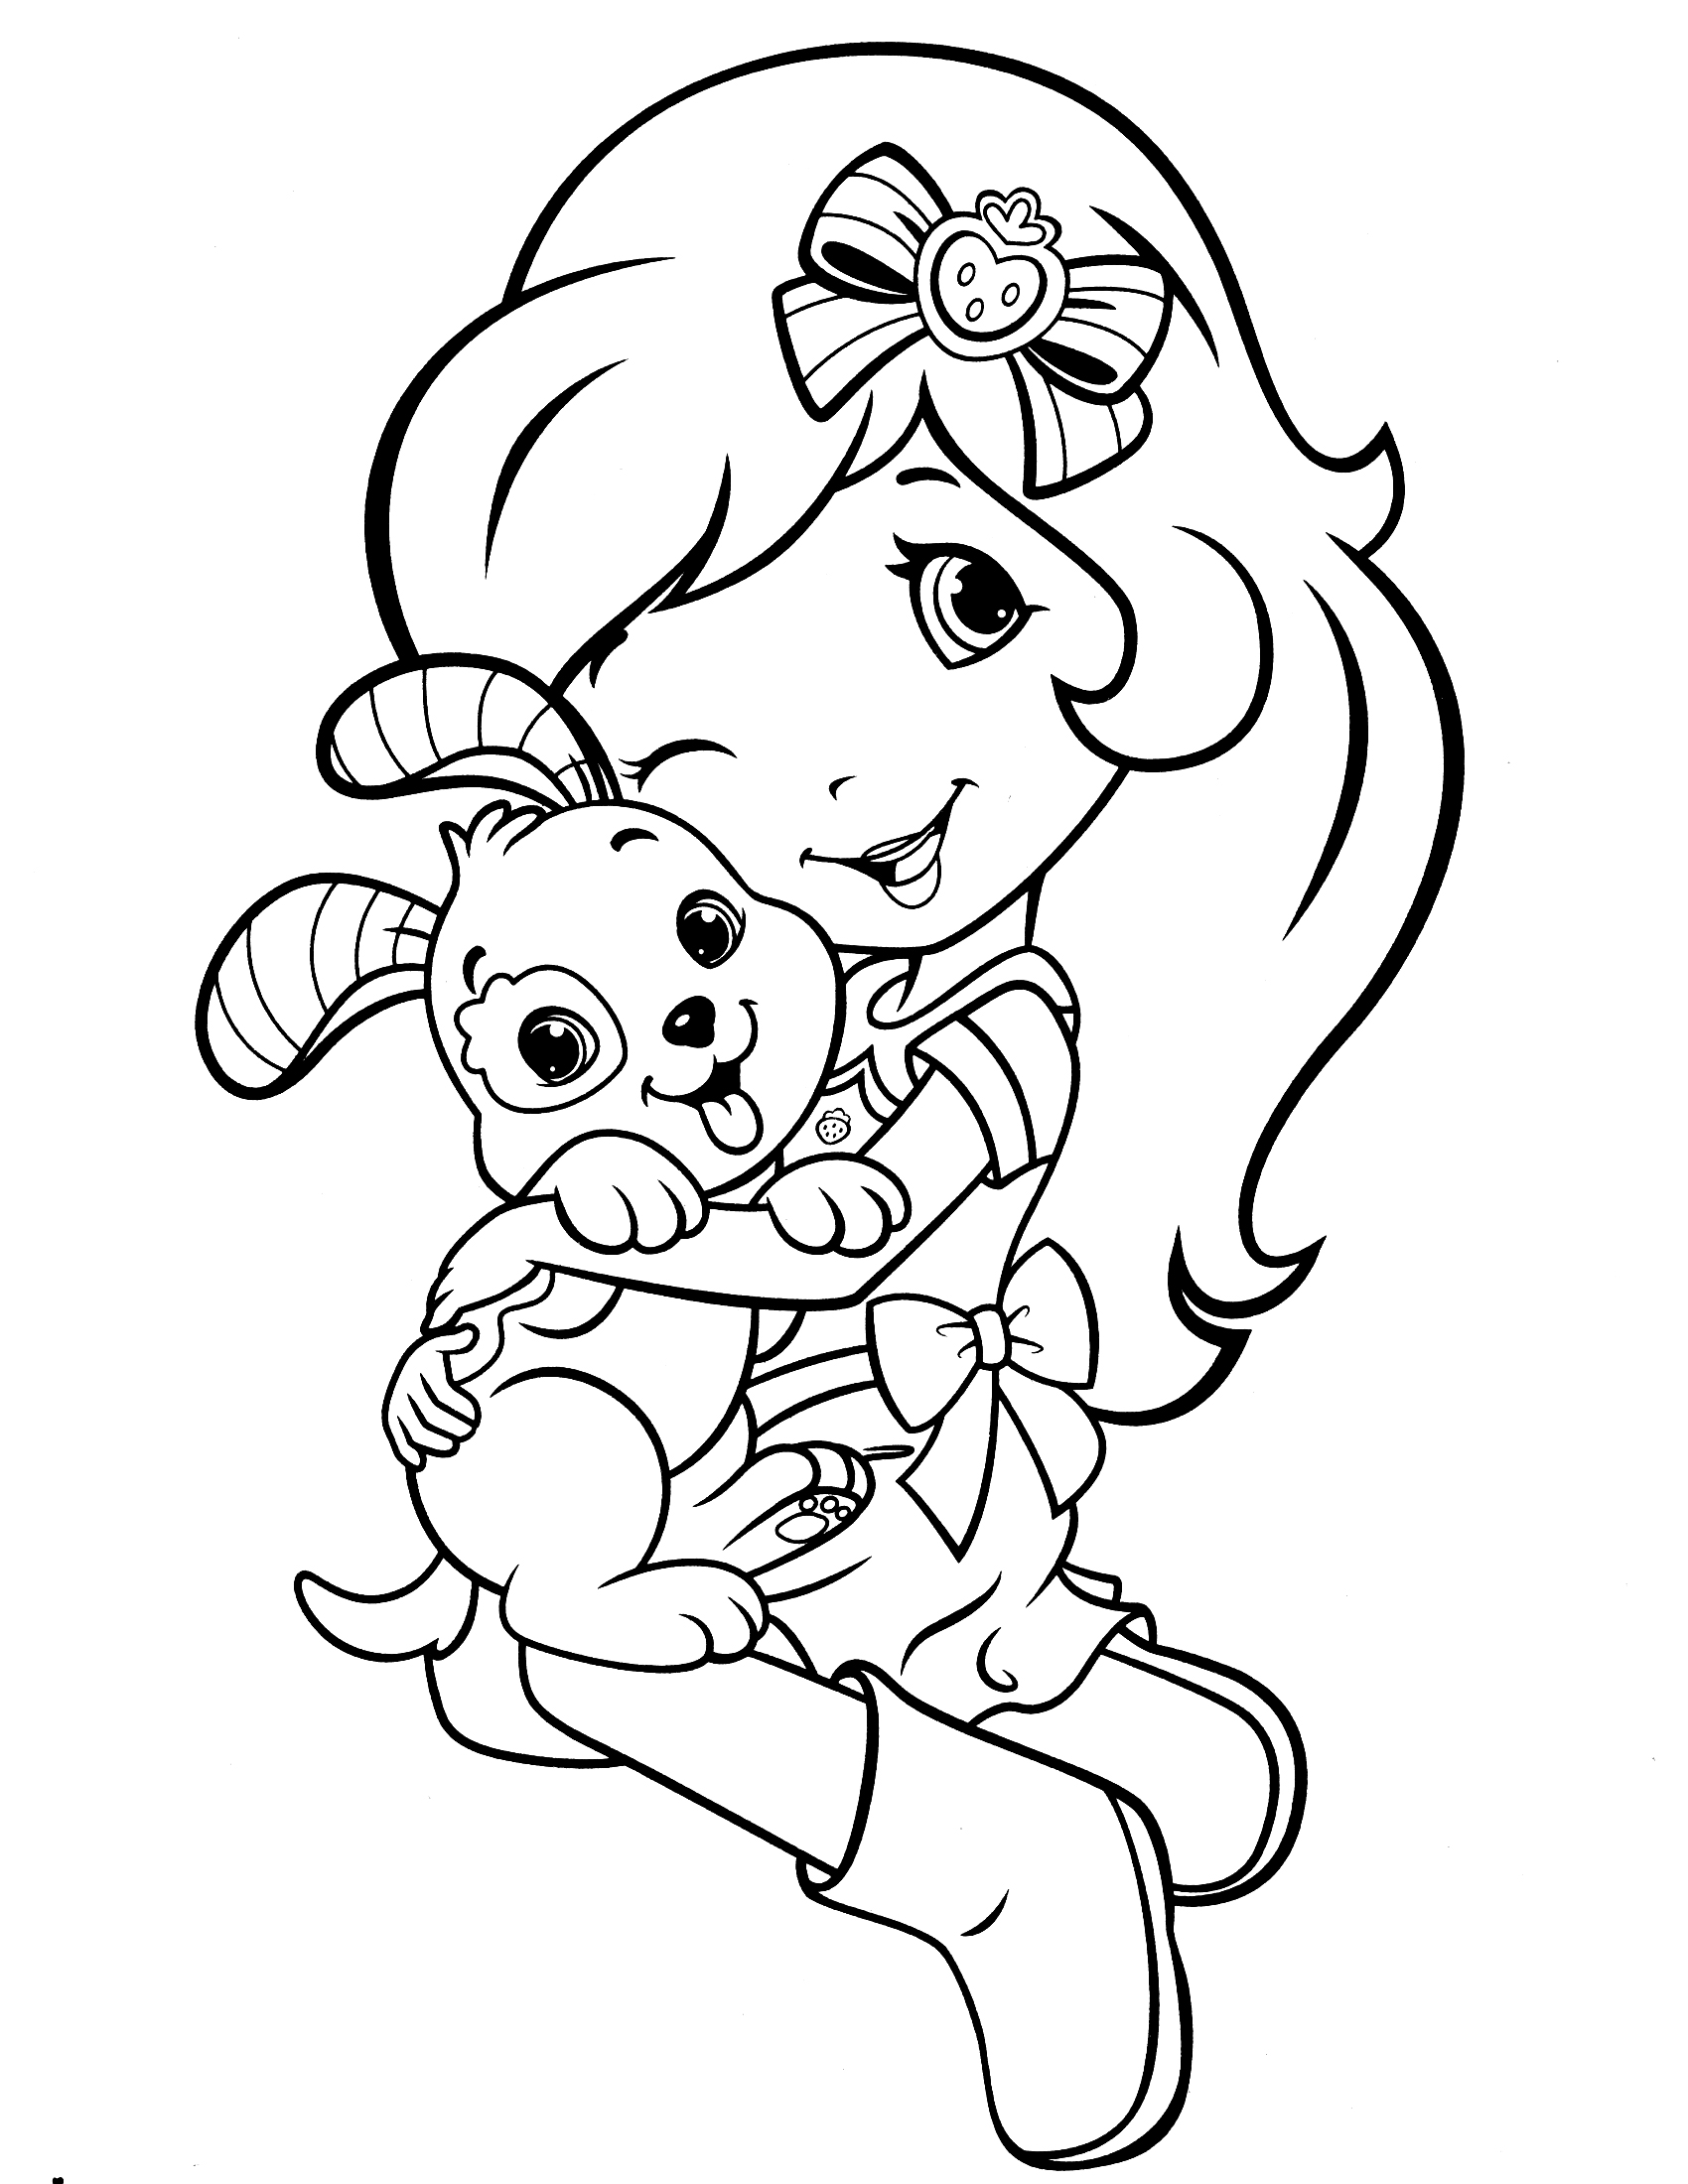 awesome coloring sheets strawberry shortcake coloring pages cool coloring pages sheets awesome coloring